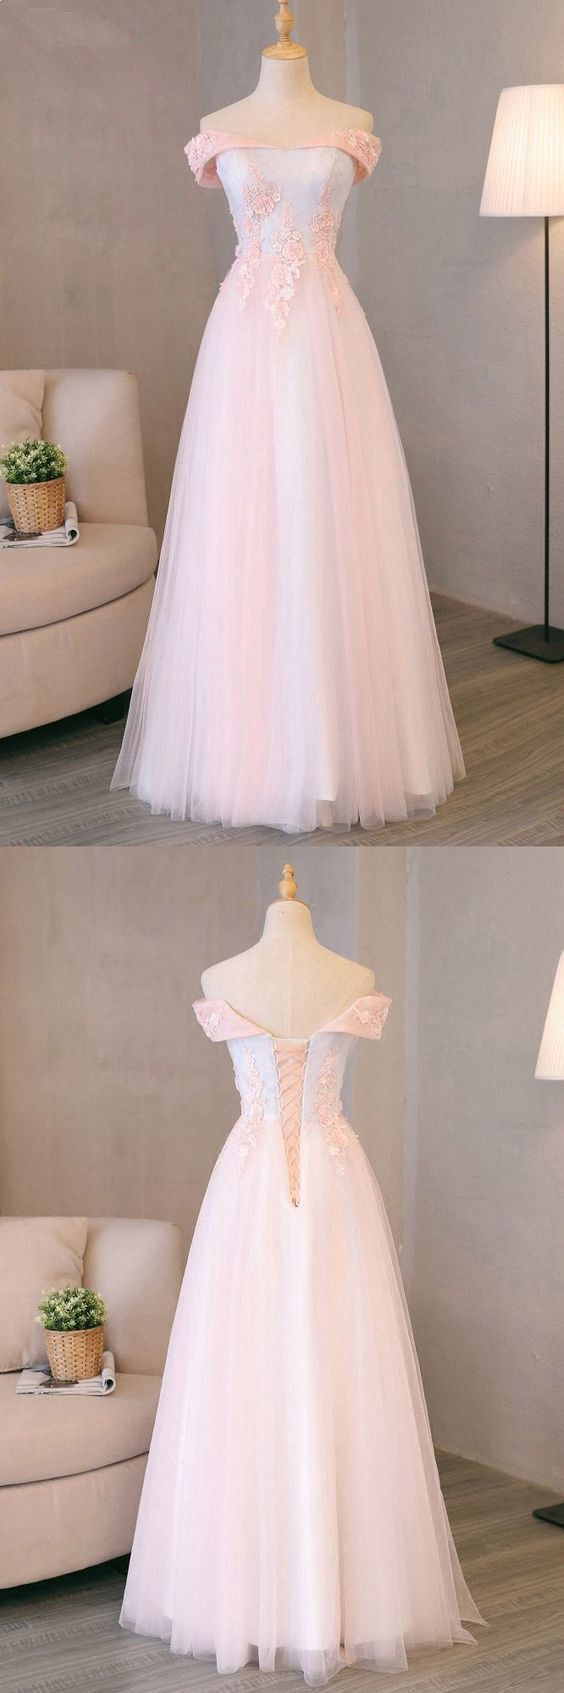 Pink And Light Blue Sweetheart Tulle Prom Dress, Charming Formal Gown, Party